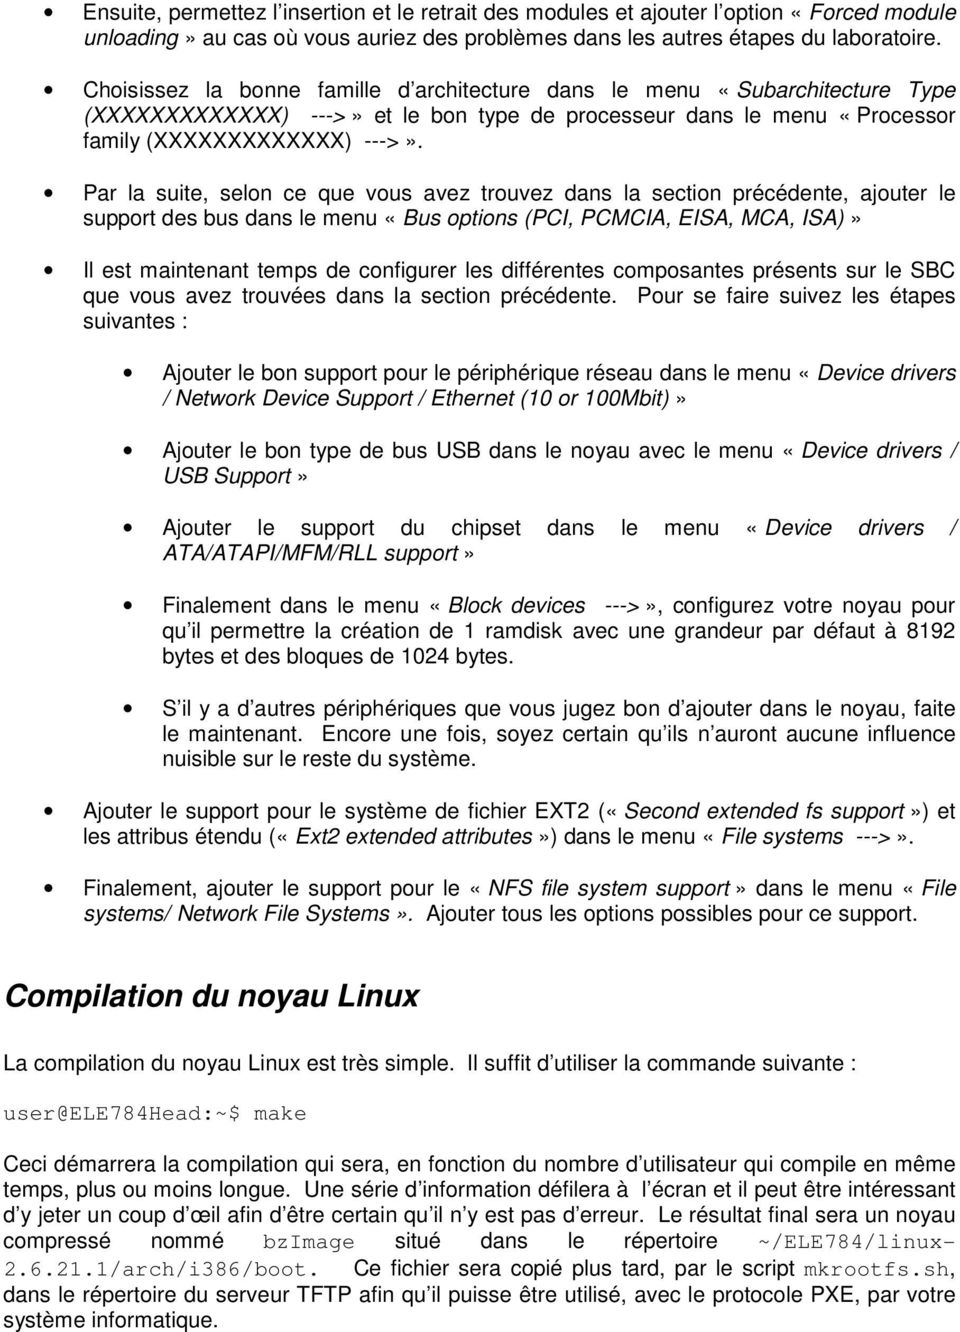 Par la suite, selon ce que vous avez trouvez dans la section précédente, ajouter le support des bus dans le menu «Bus options (PCI, PCMCIA, EISA, MCA, ISA)» Il est maintenant temps de configurer les